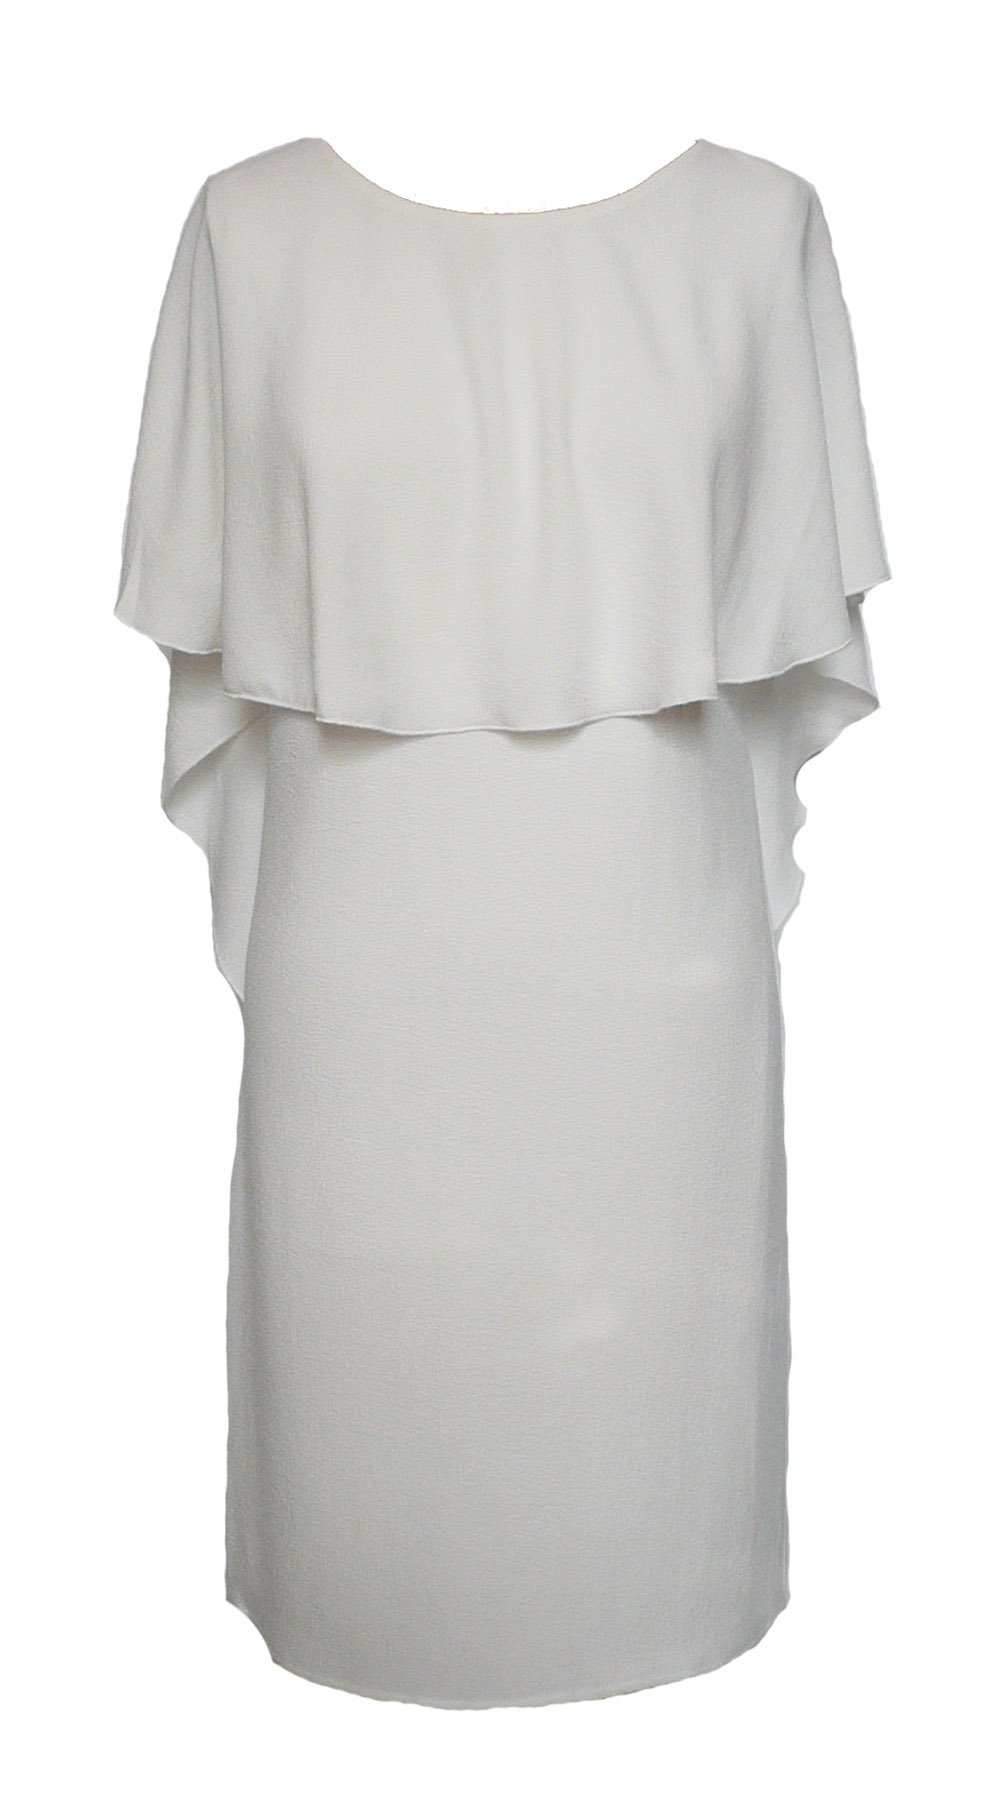 dress white float.jpg